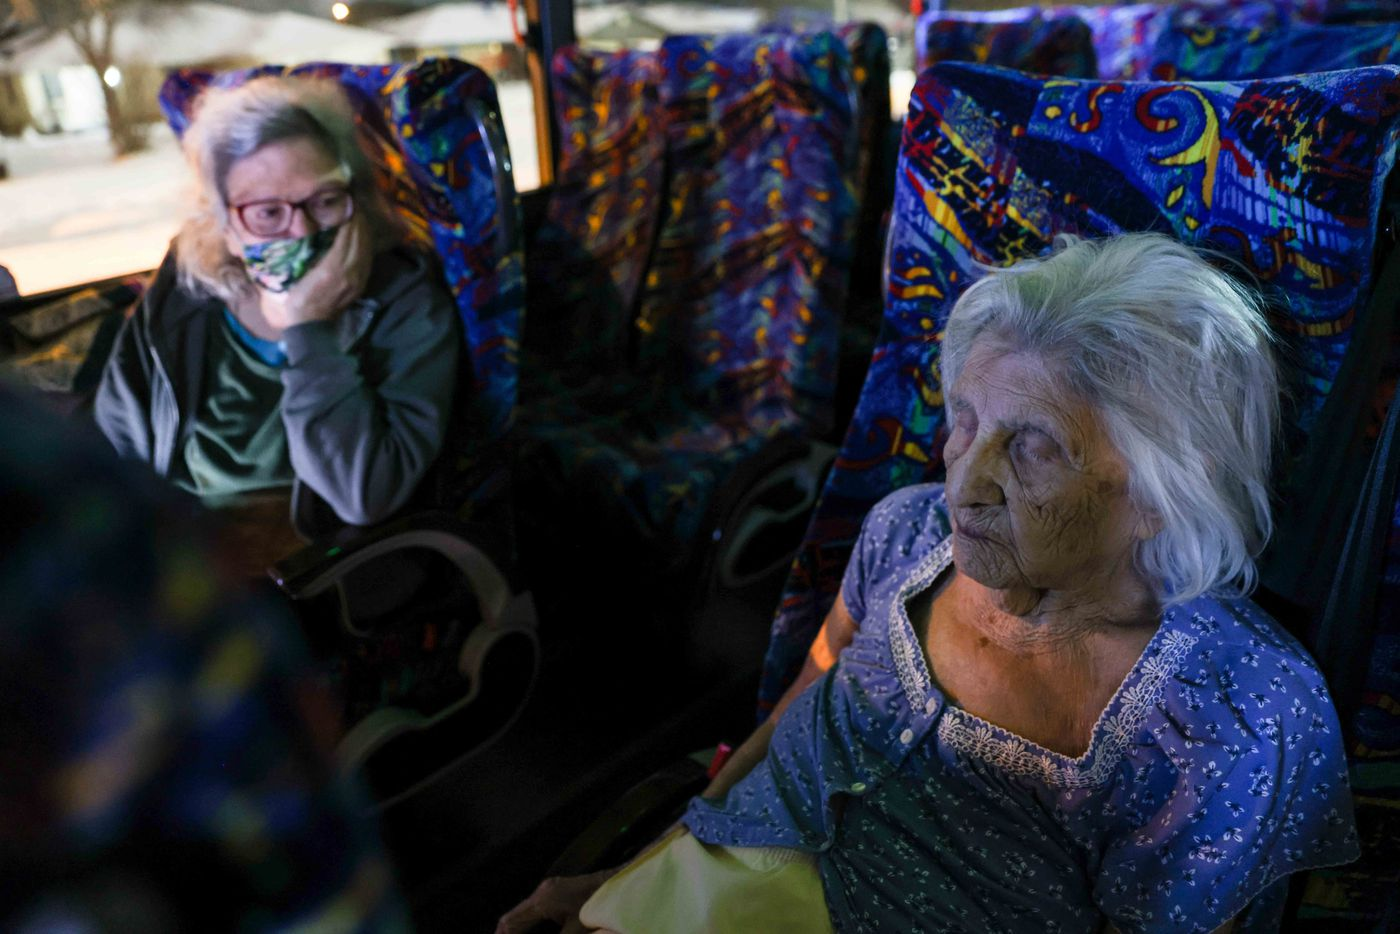 Gloria Sanders, 76, looks at her mother, Maria Barajas, who is 100 years old and has dementia, as she sleeps on a bus that serves as a warming center located at Pleasant Oaks Recreation Center on Wednesday, February 18, 2021 in Dallas. Their home has been without power since early Monday after the snowstorm hit Texas last Sunday.